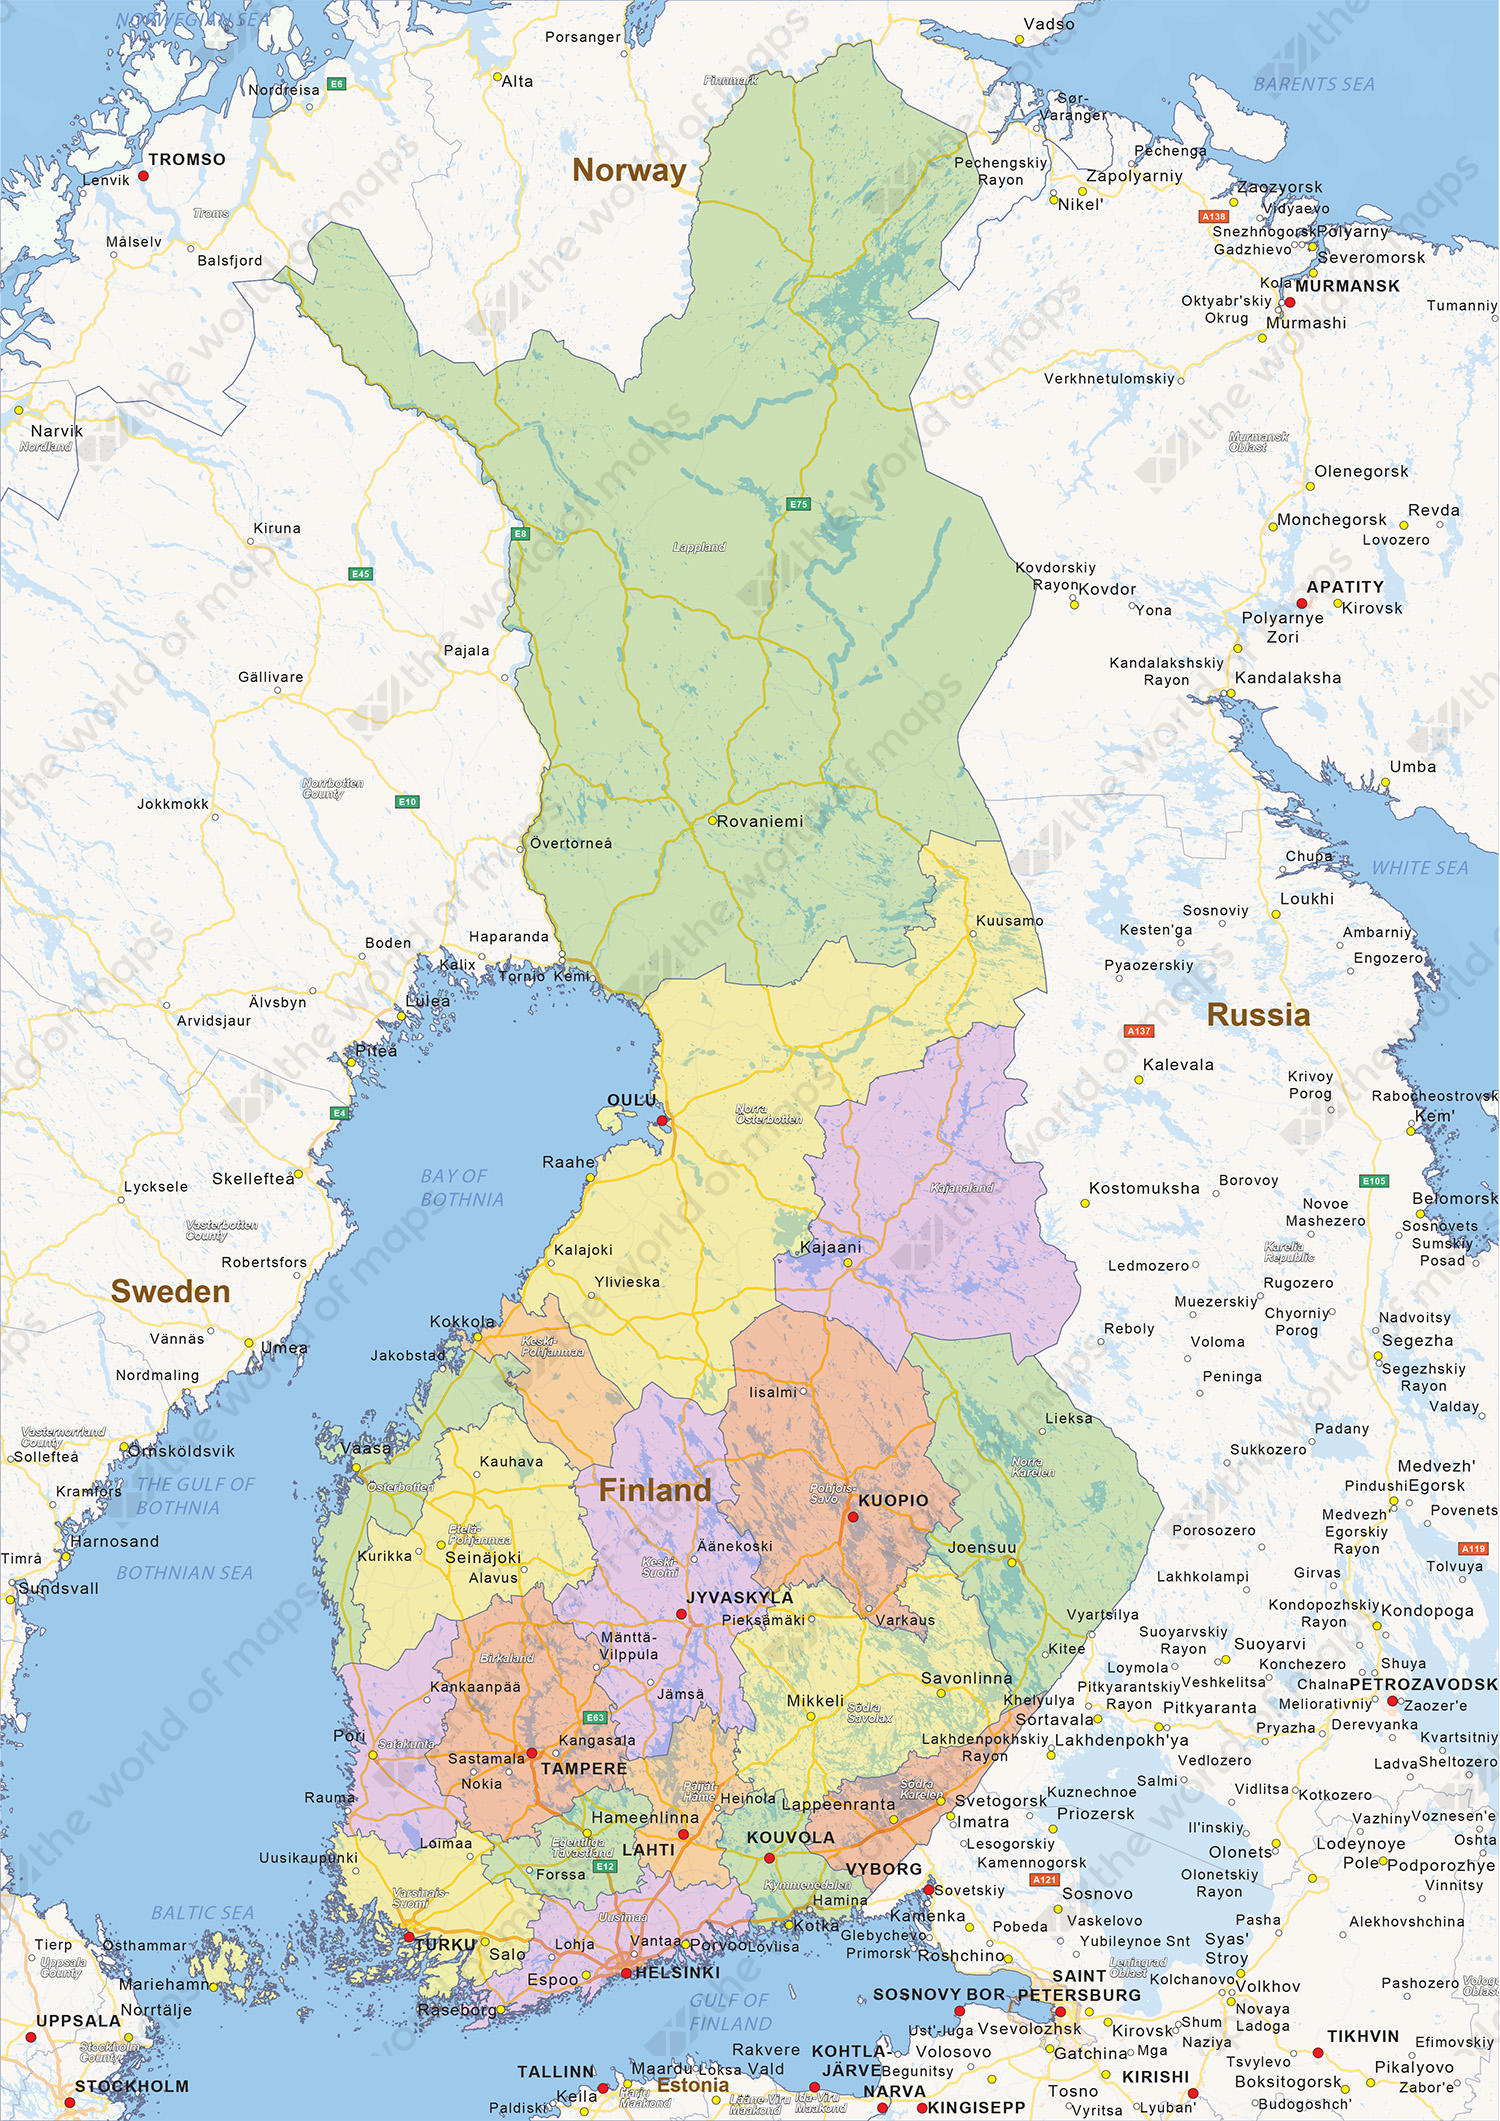 Digital political map of finland 1432 the world of maps digital political map of finland gumiabroncs Choice Image